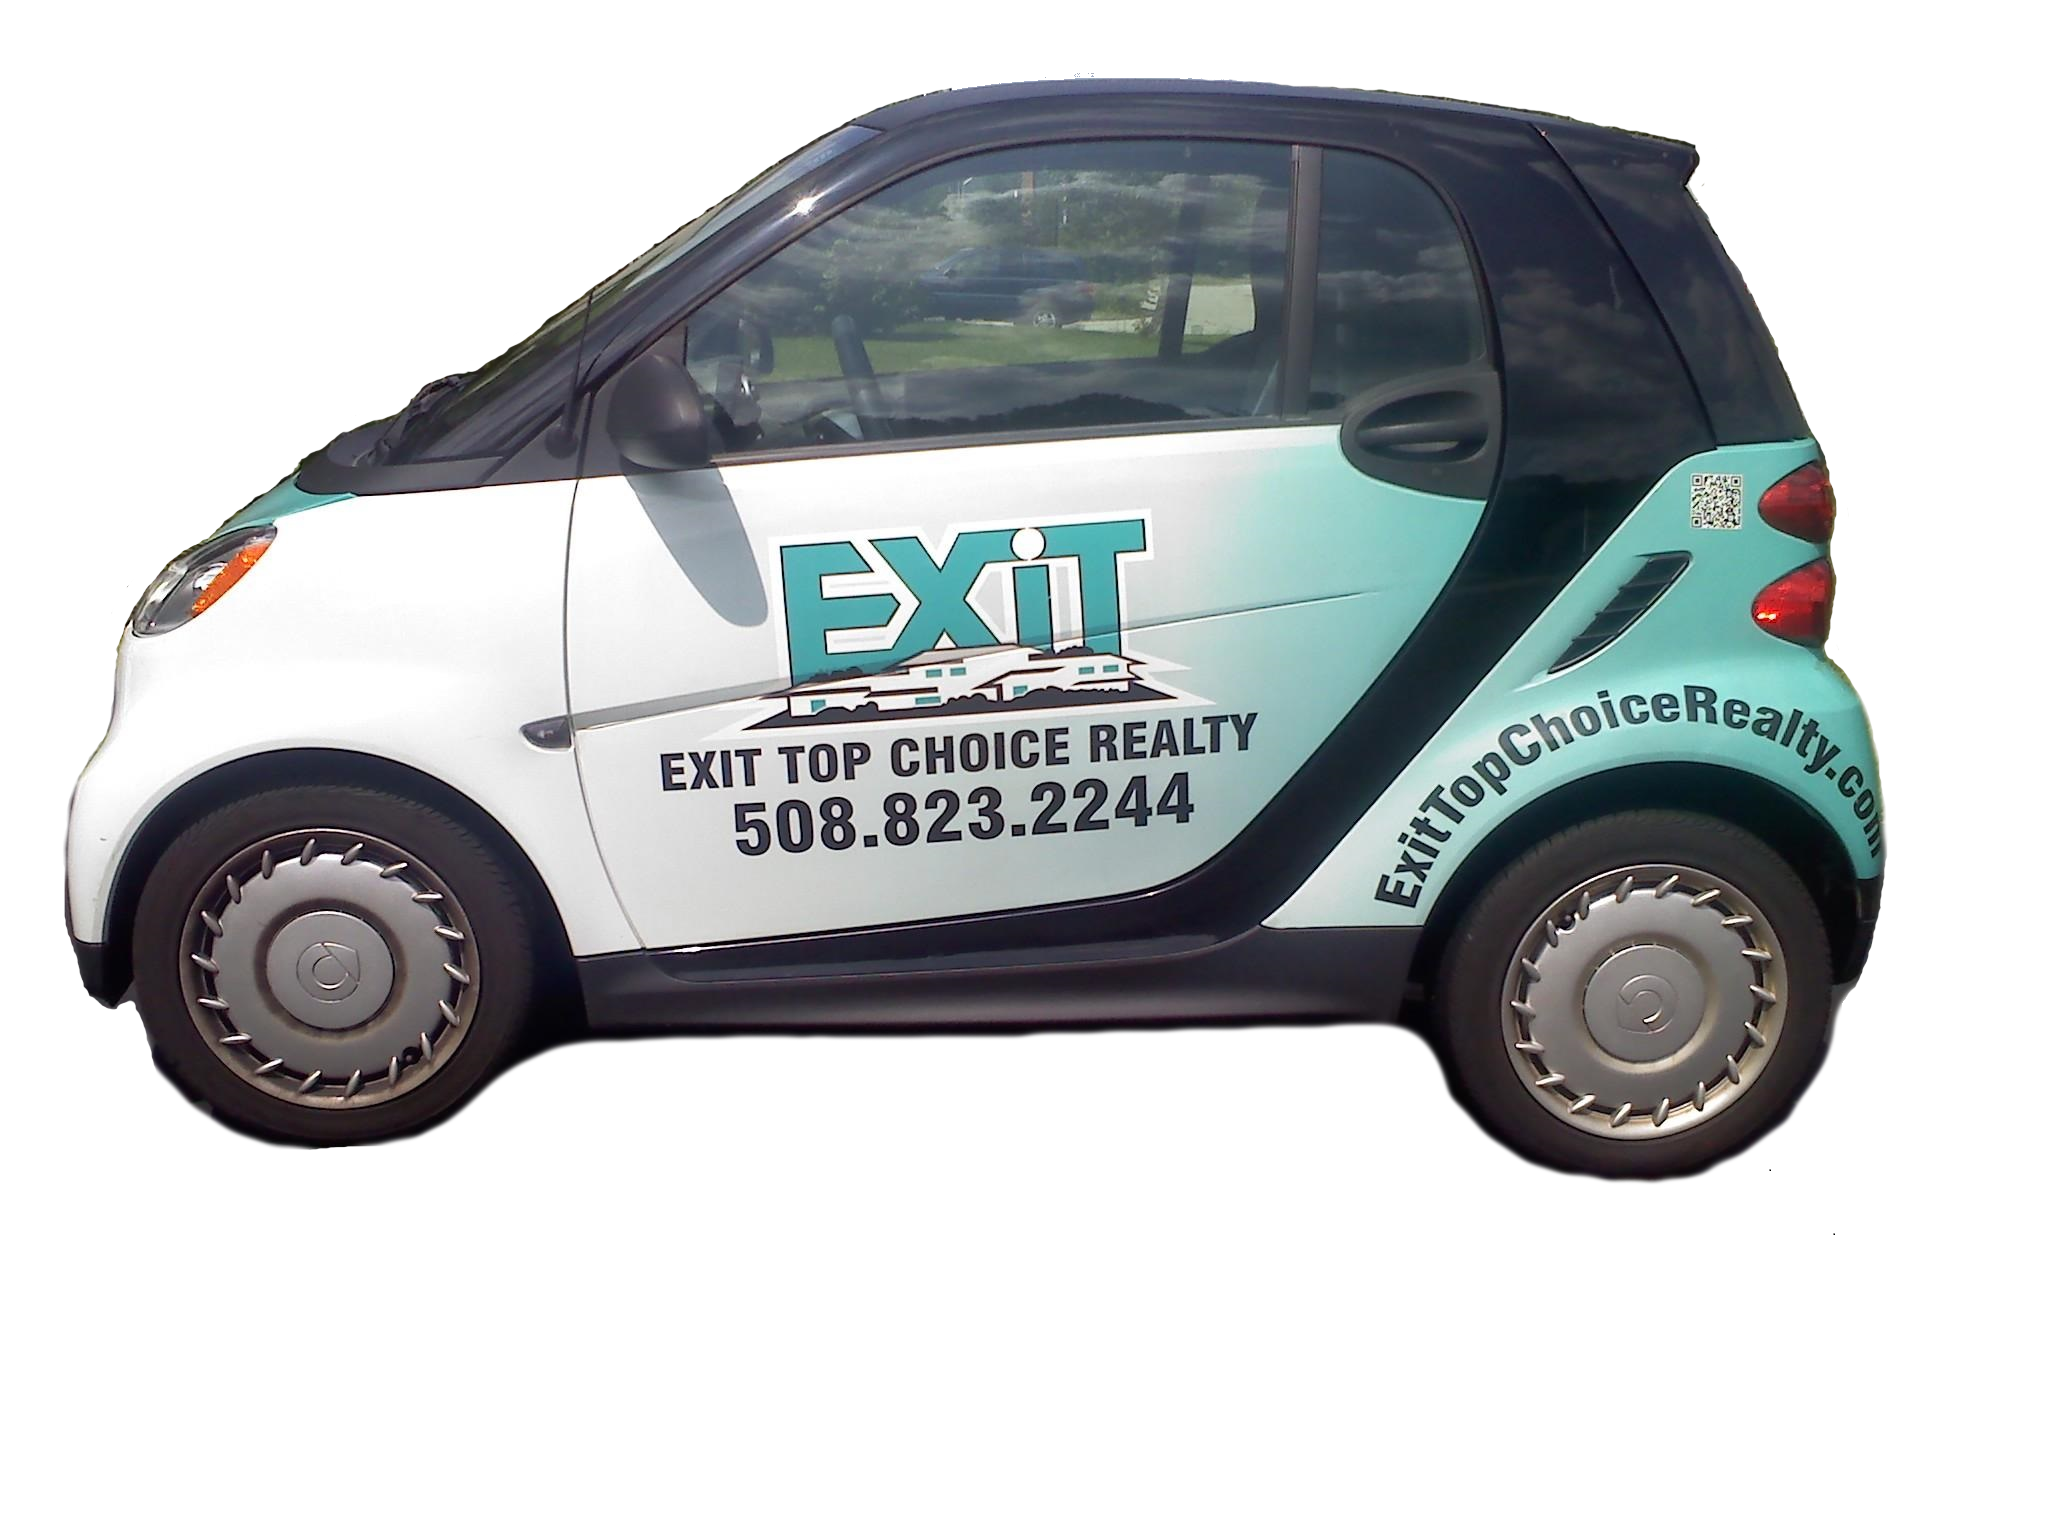 Exit Top Choice Realty